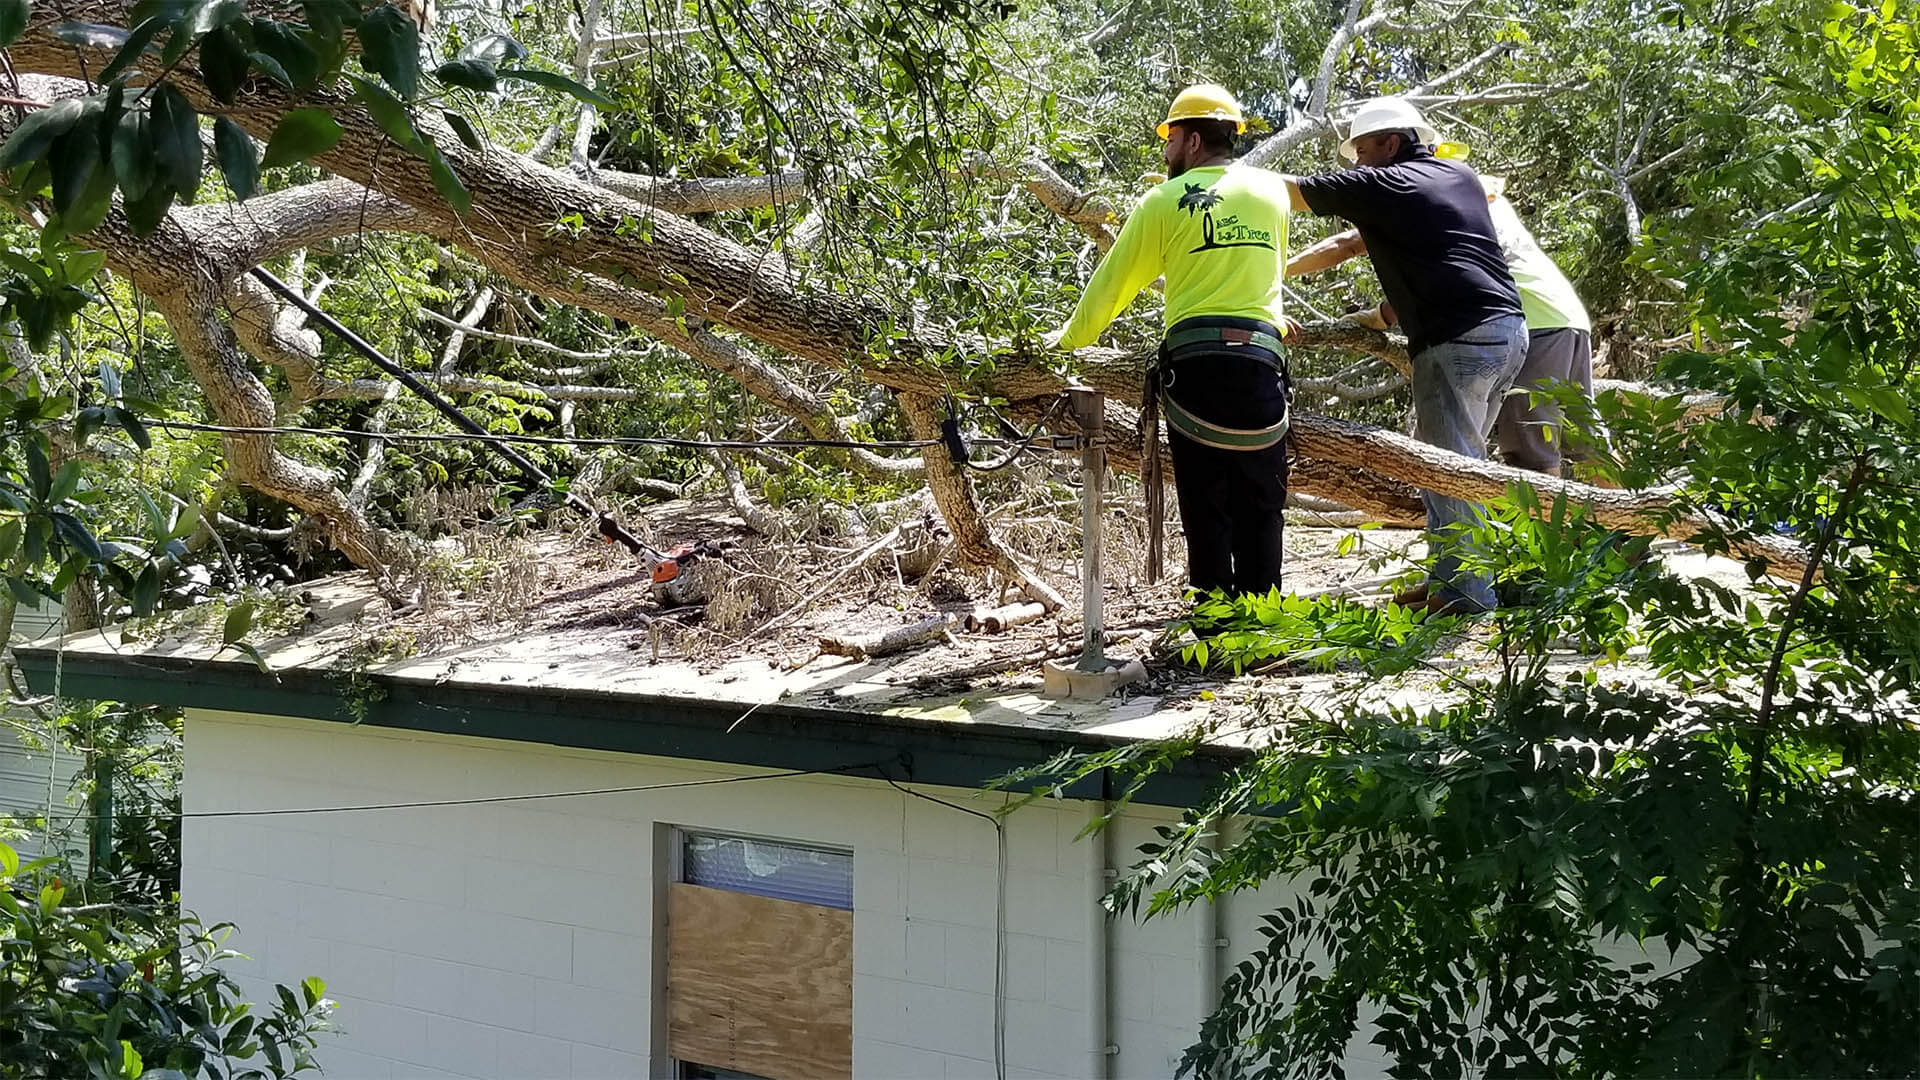 Storm Damage-Albuquerque Tree Trimming and Stump Grinding Services-We Offer Tree Trimming Services, Tree Removal, Tree Pruning, Tree Cutting, Residential and Commercial Tree Trimming Services, Storm Damage, Emergency Tree Removal, Land Clearing, Tree Companies, Tree Care Service, Stump Grinding, and we're the Best Tree Trimming Company Near You Guaranteed!